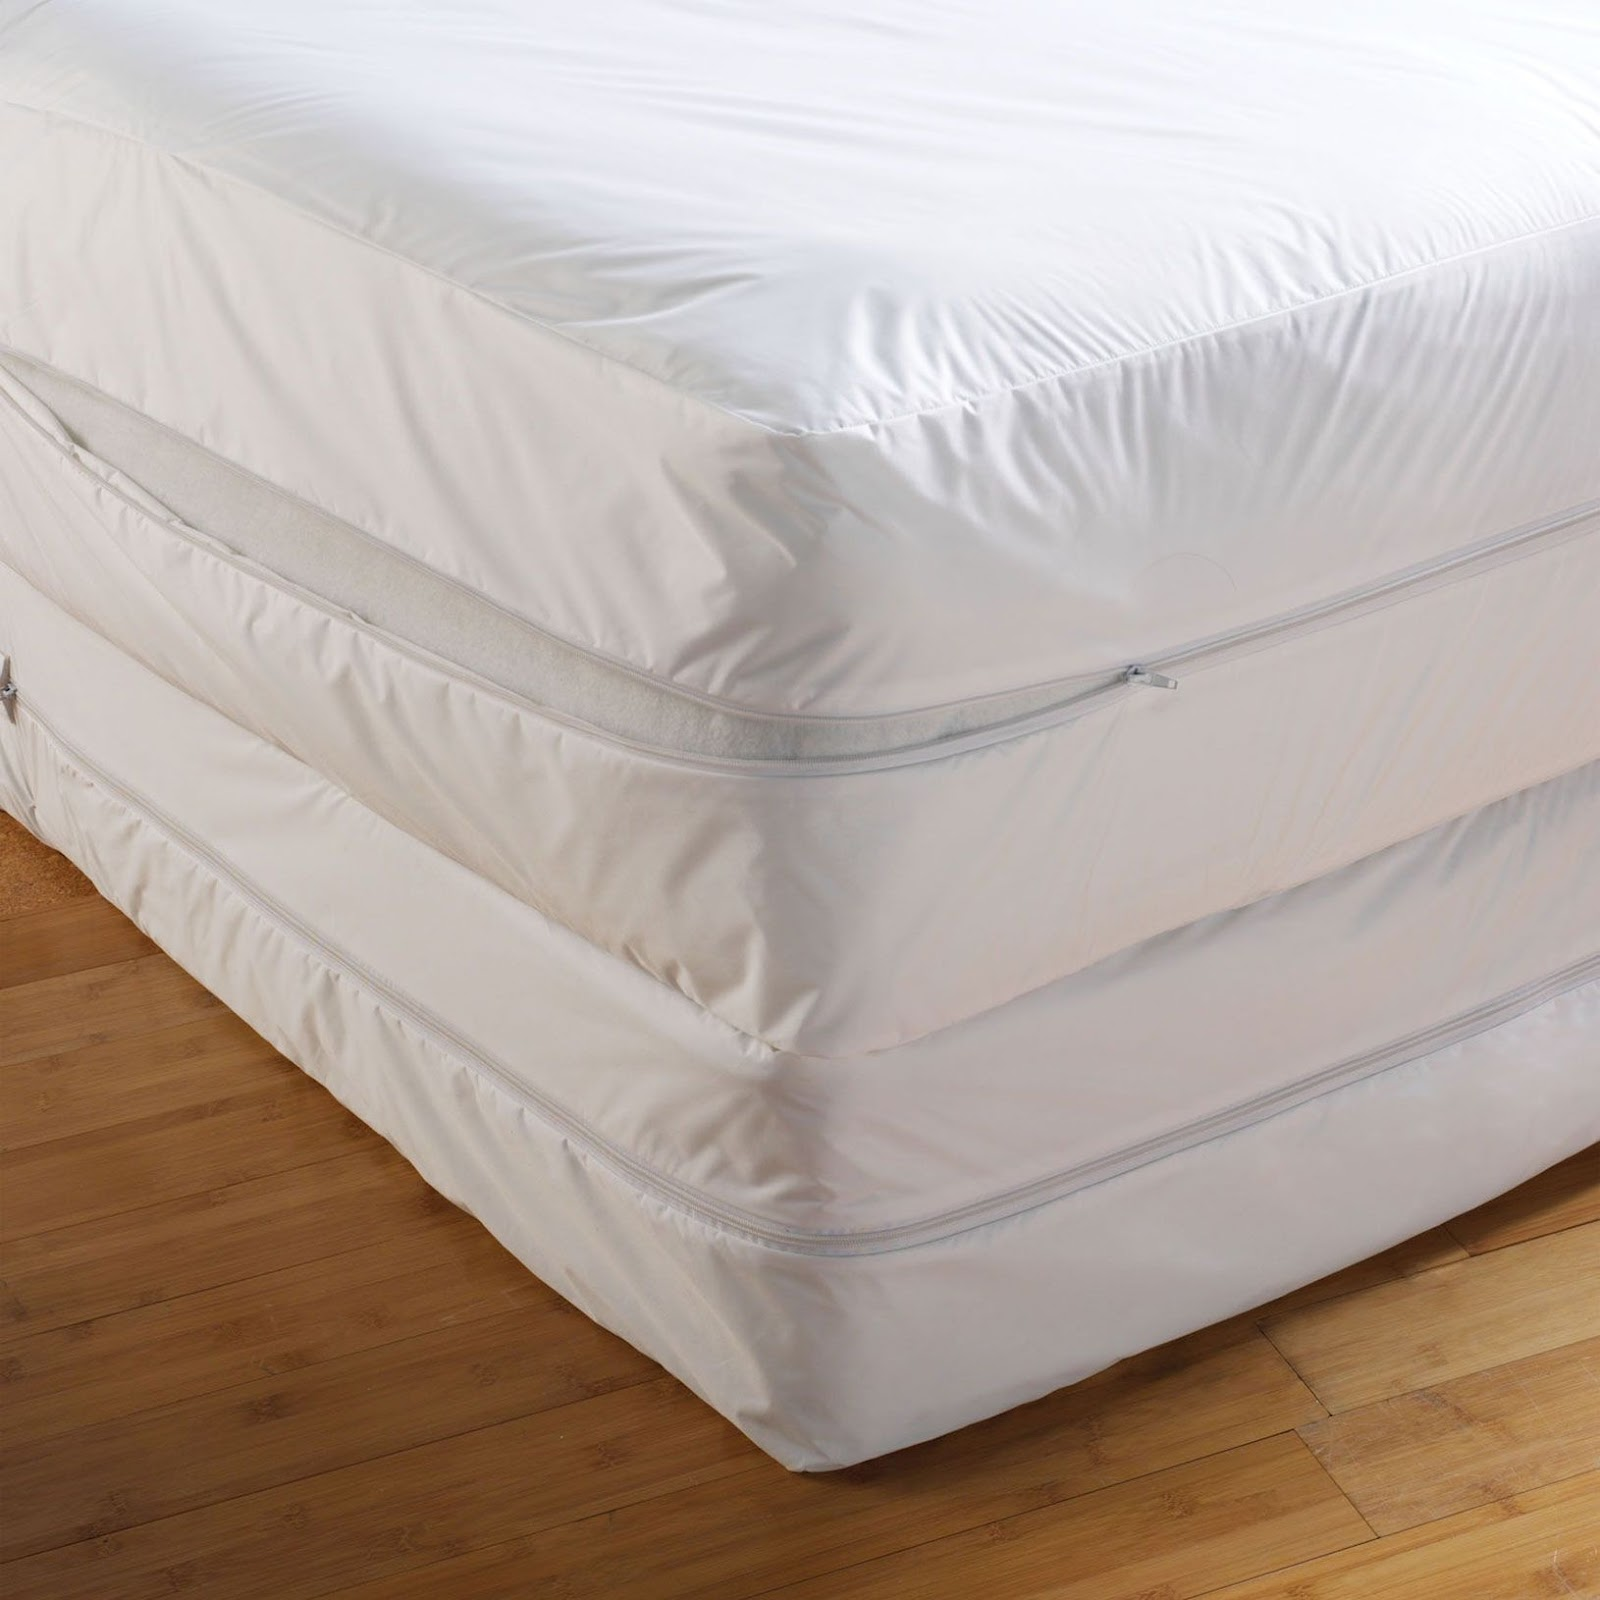 Bed bug mattress cover is the best defense for preventing